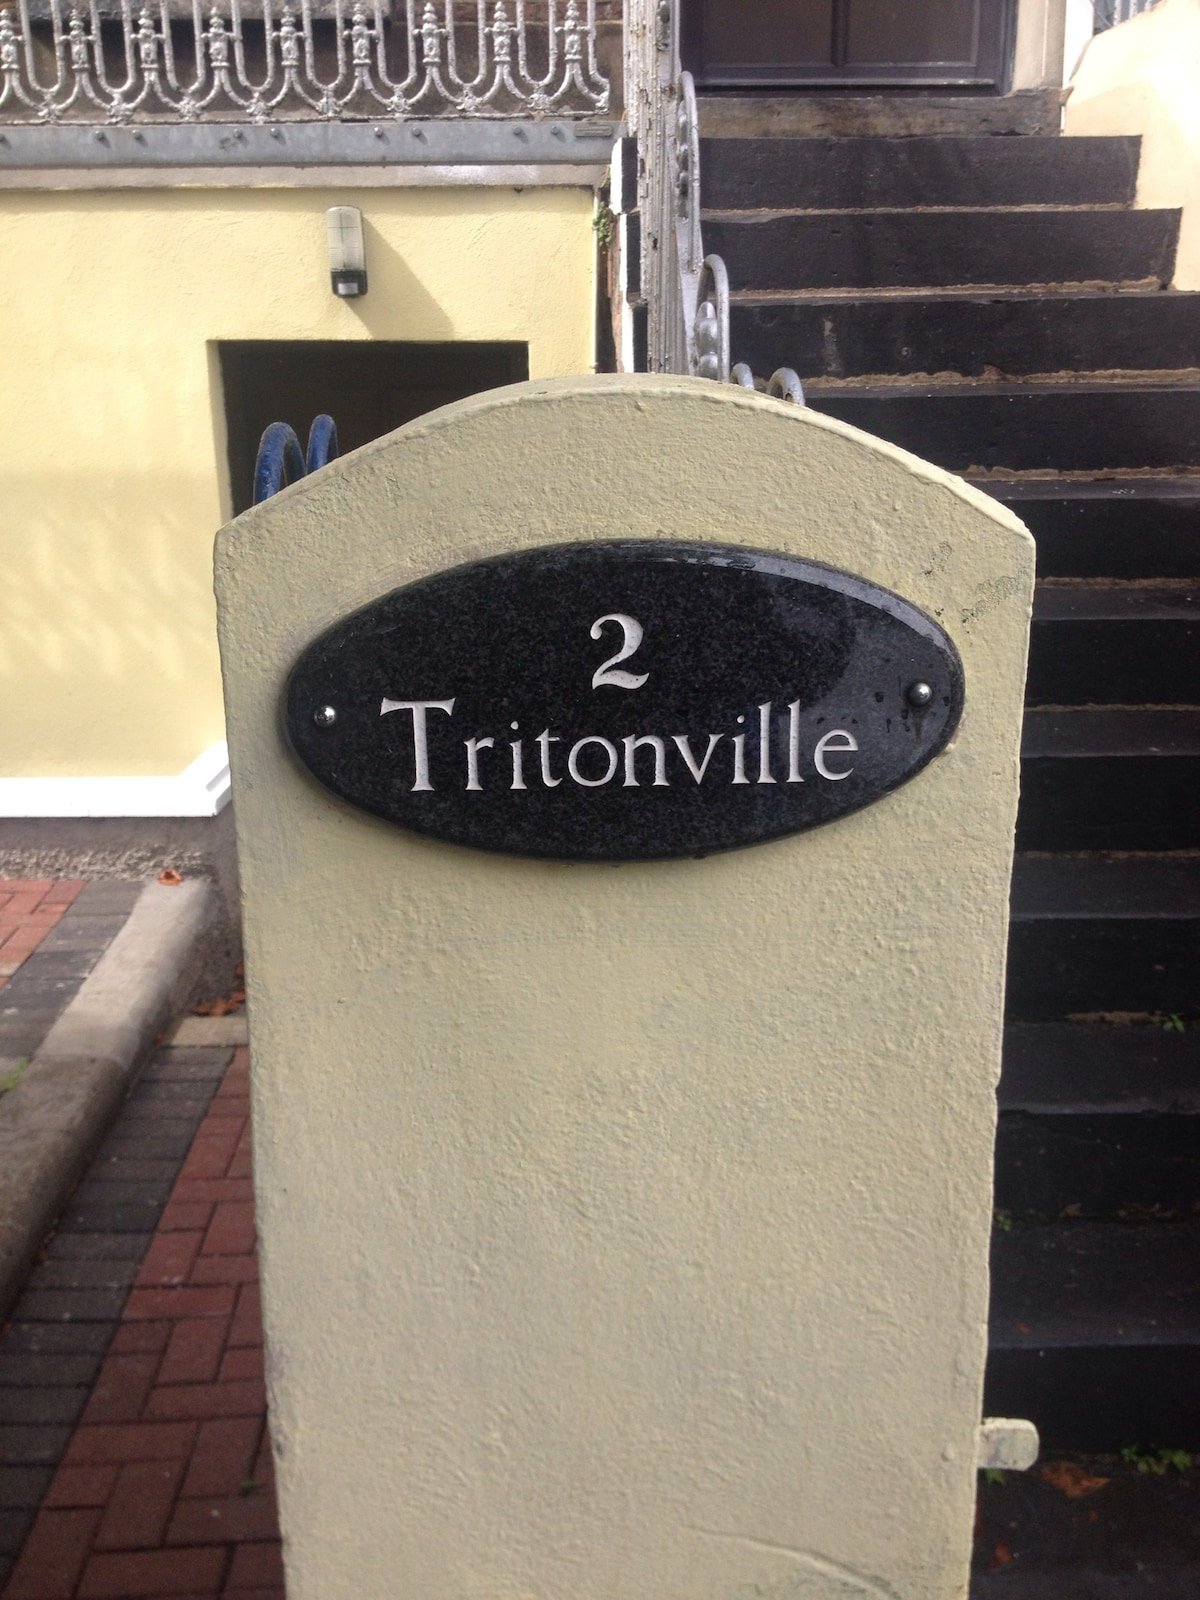 Not to be confused with 2 O'Connell Avenue or 2 O'Connell Street!